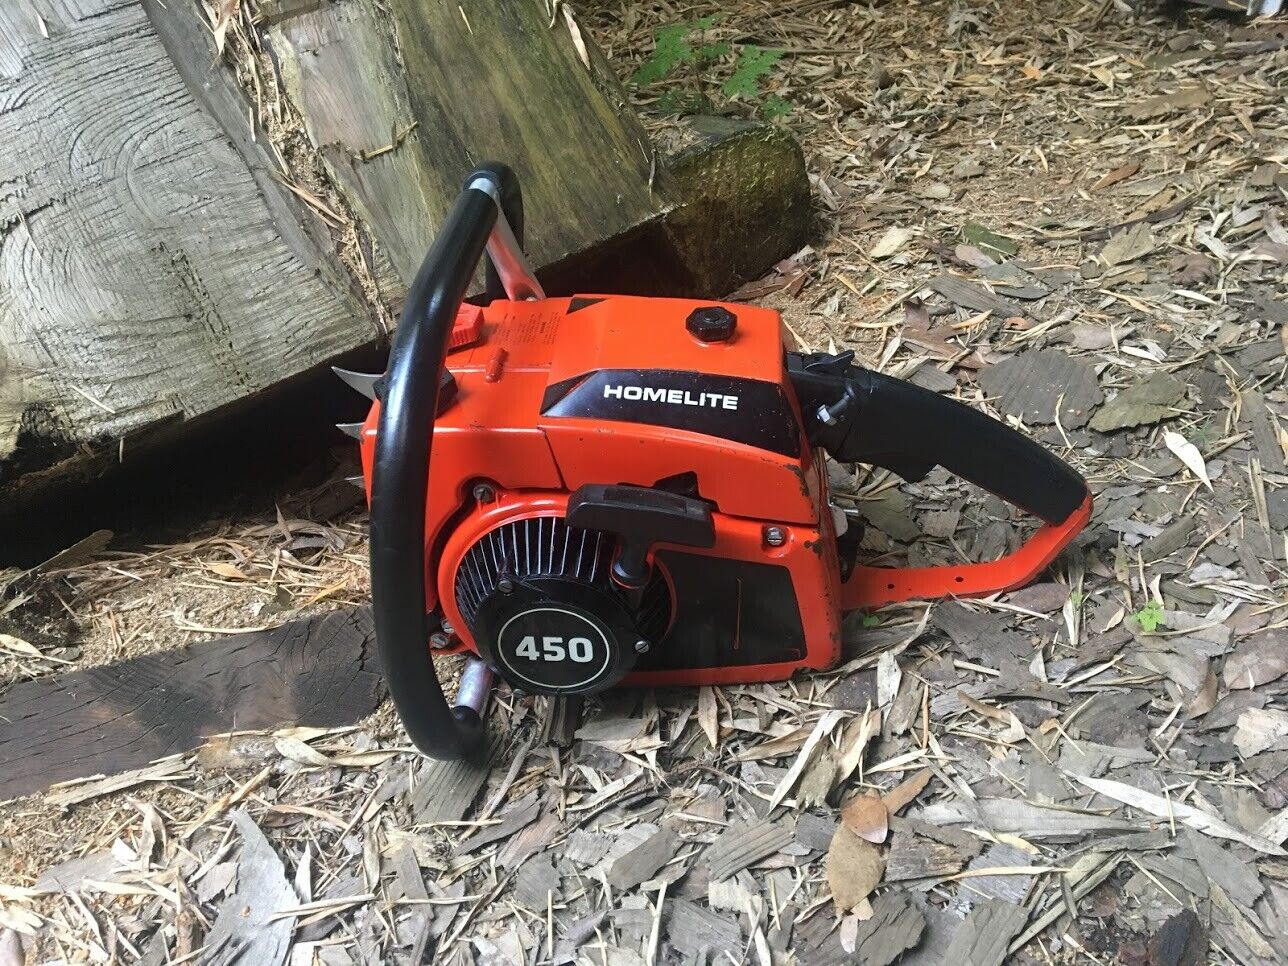 RARE NEAR MINT WEST COAST HOMELITE 450 CHAINSAW POWERHEAD--FREE SHIPPING. Available Now for 1099.99